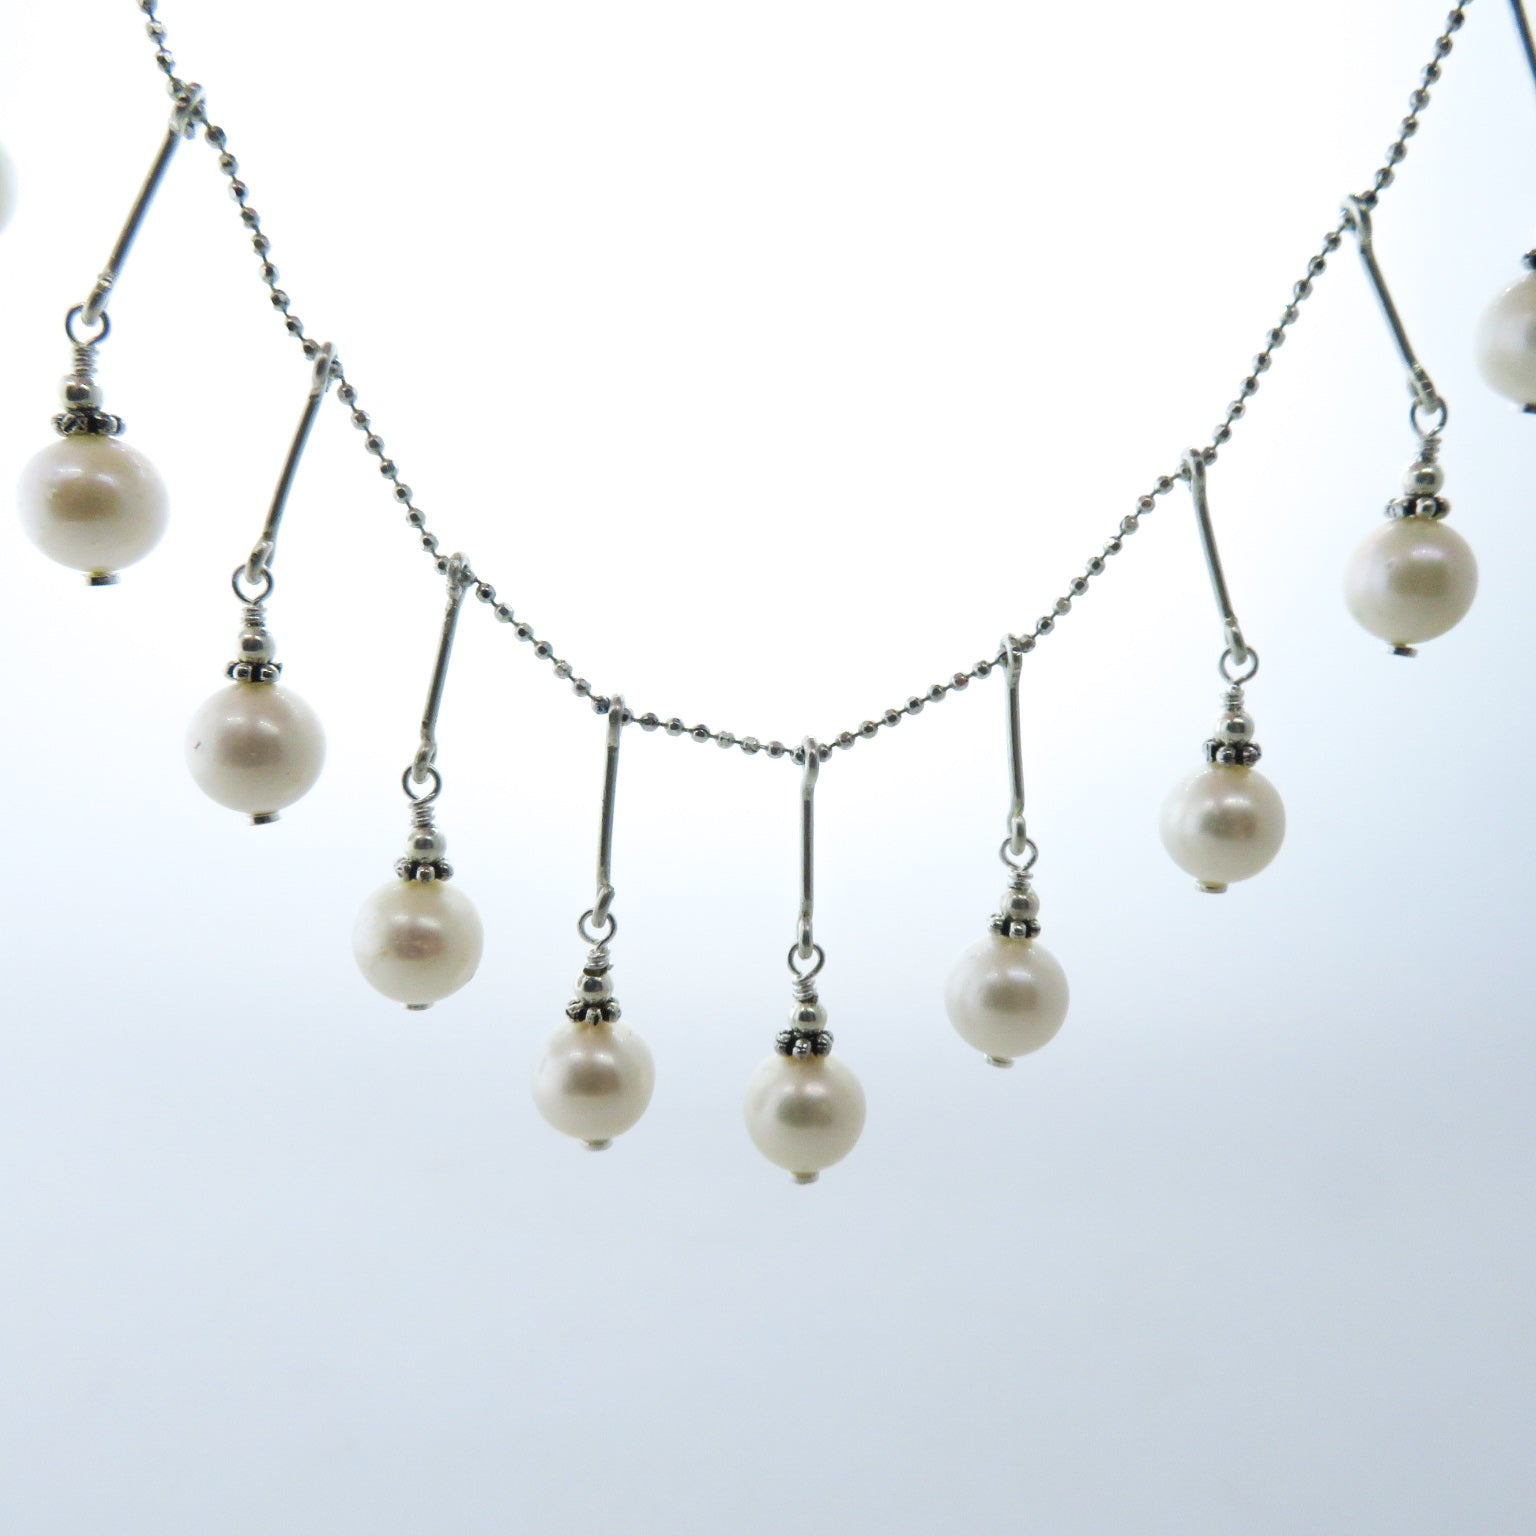 Fresh Water Pearl Necklace with Sterling Silver